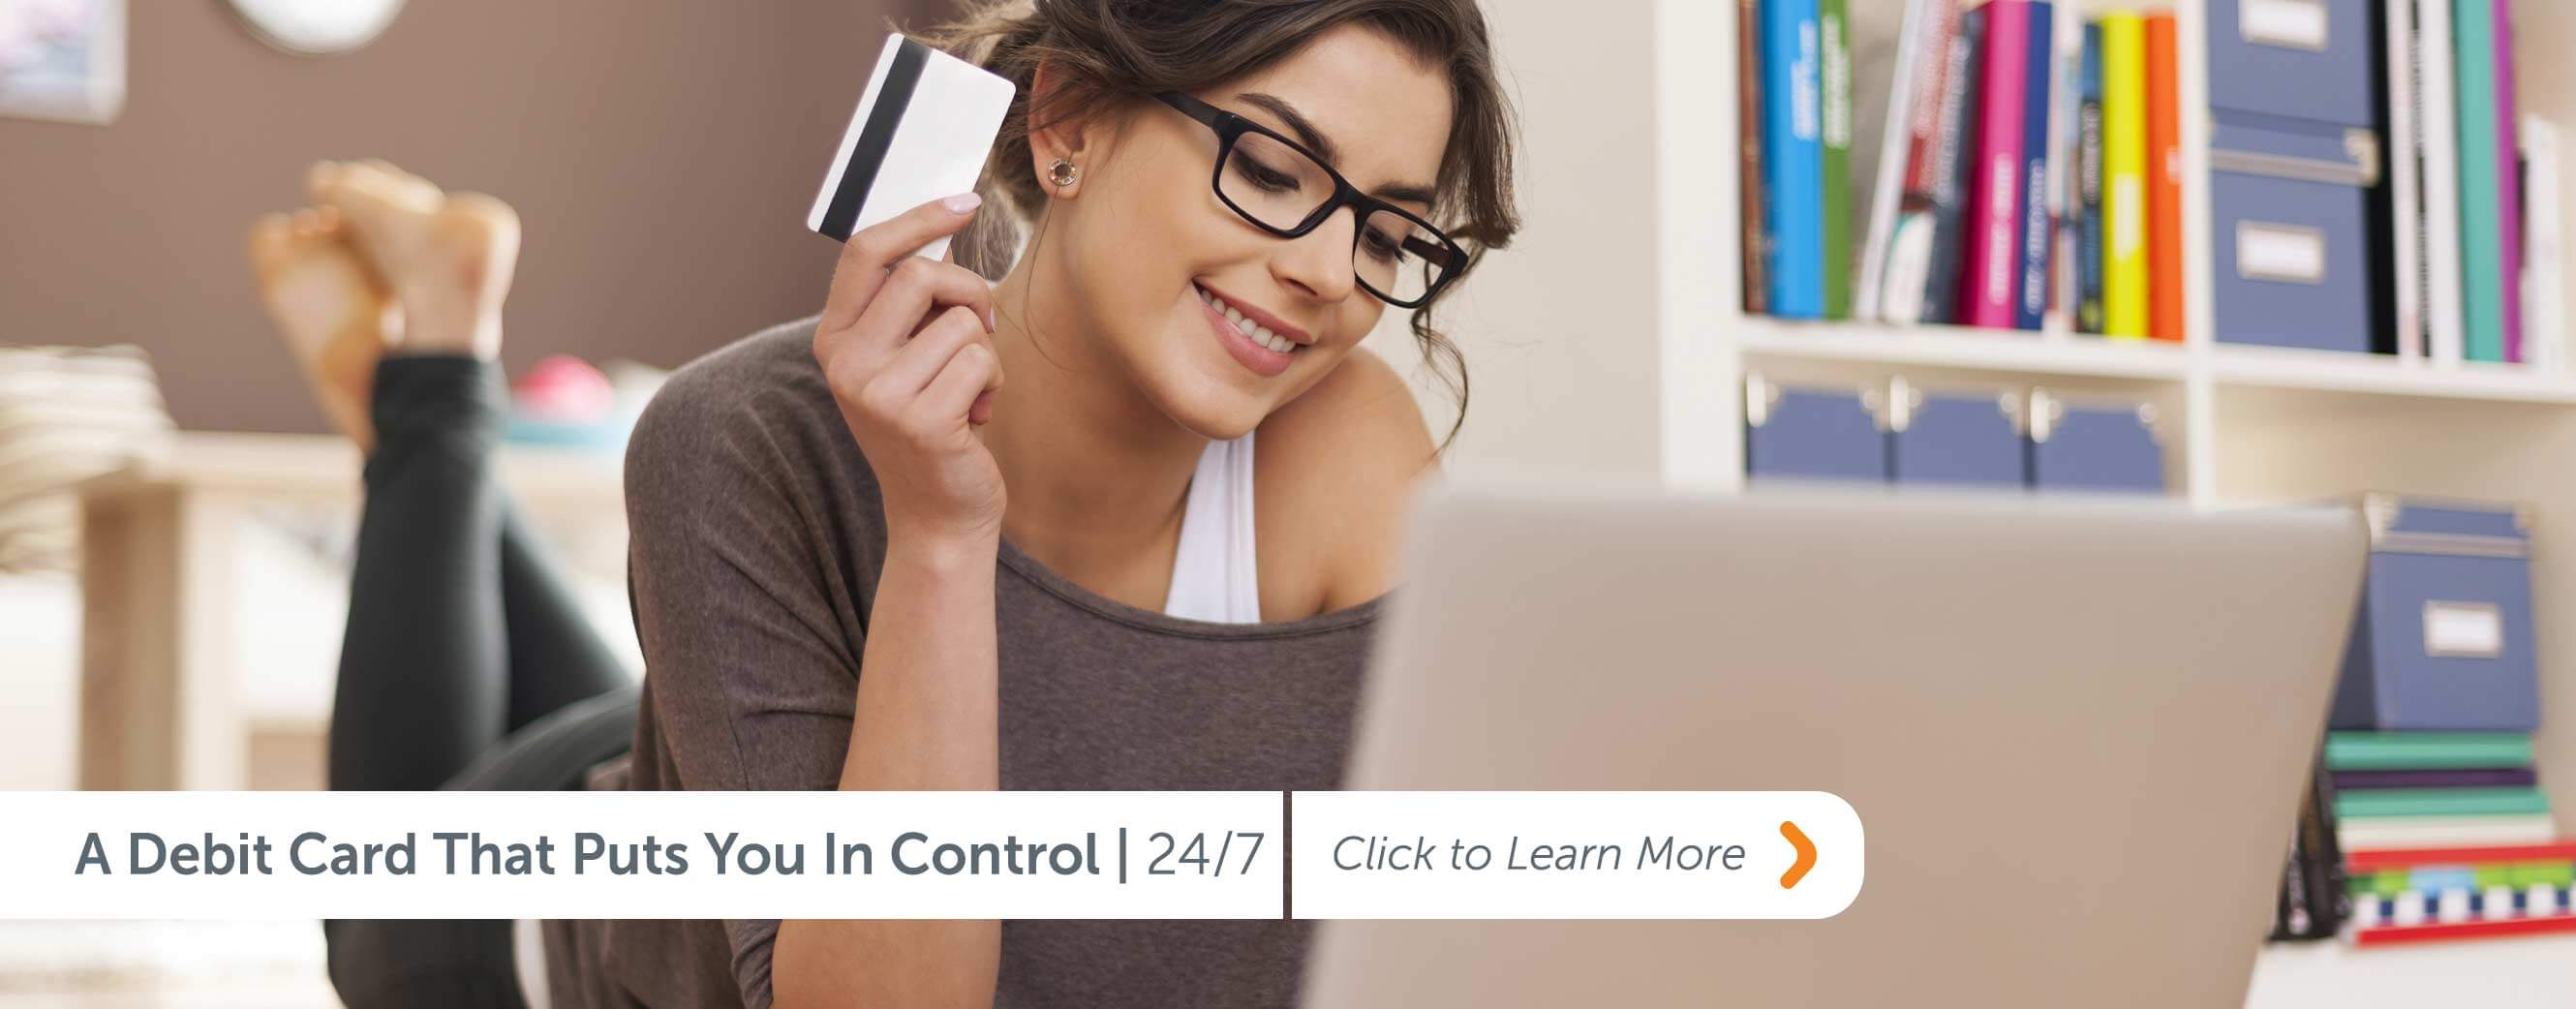 A Debit Card That Puts You In Control | 24/7 Click to Learn More